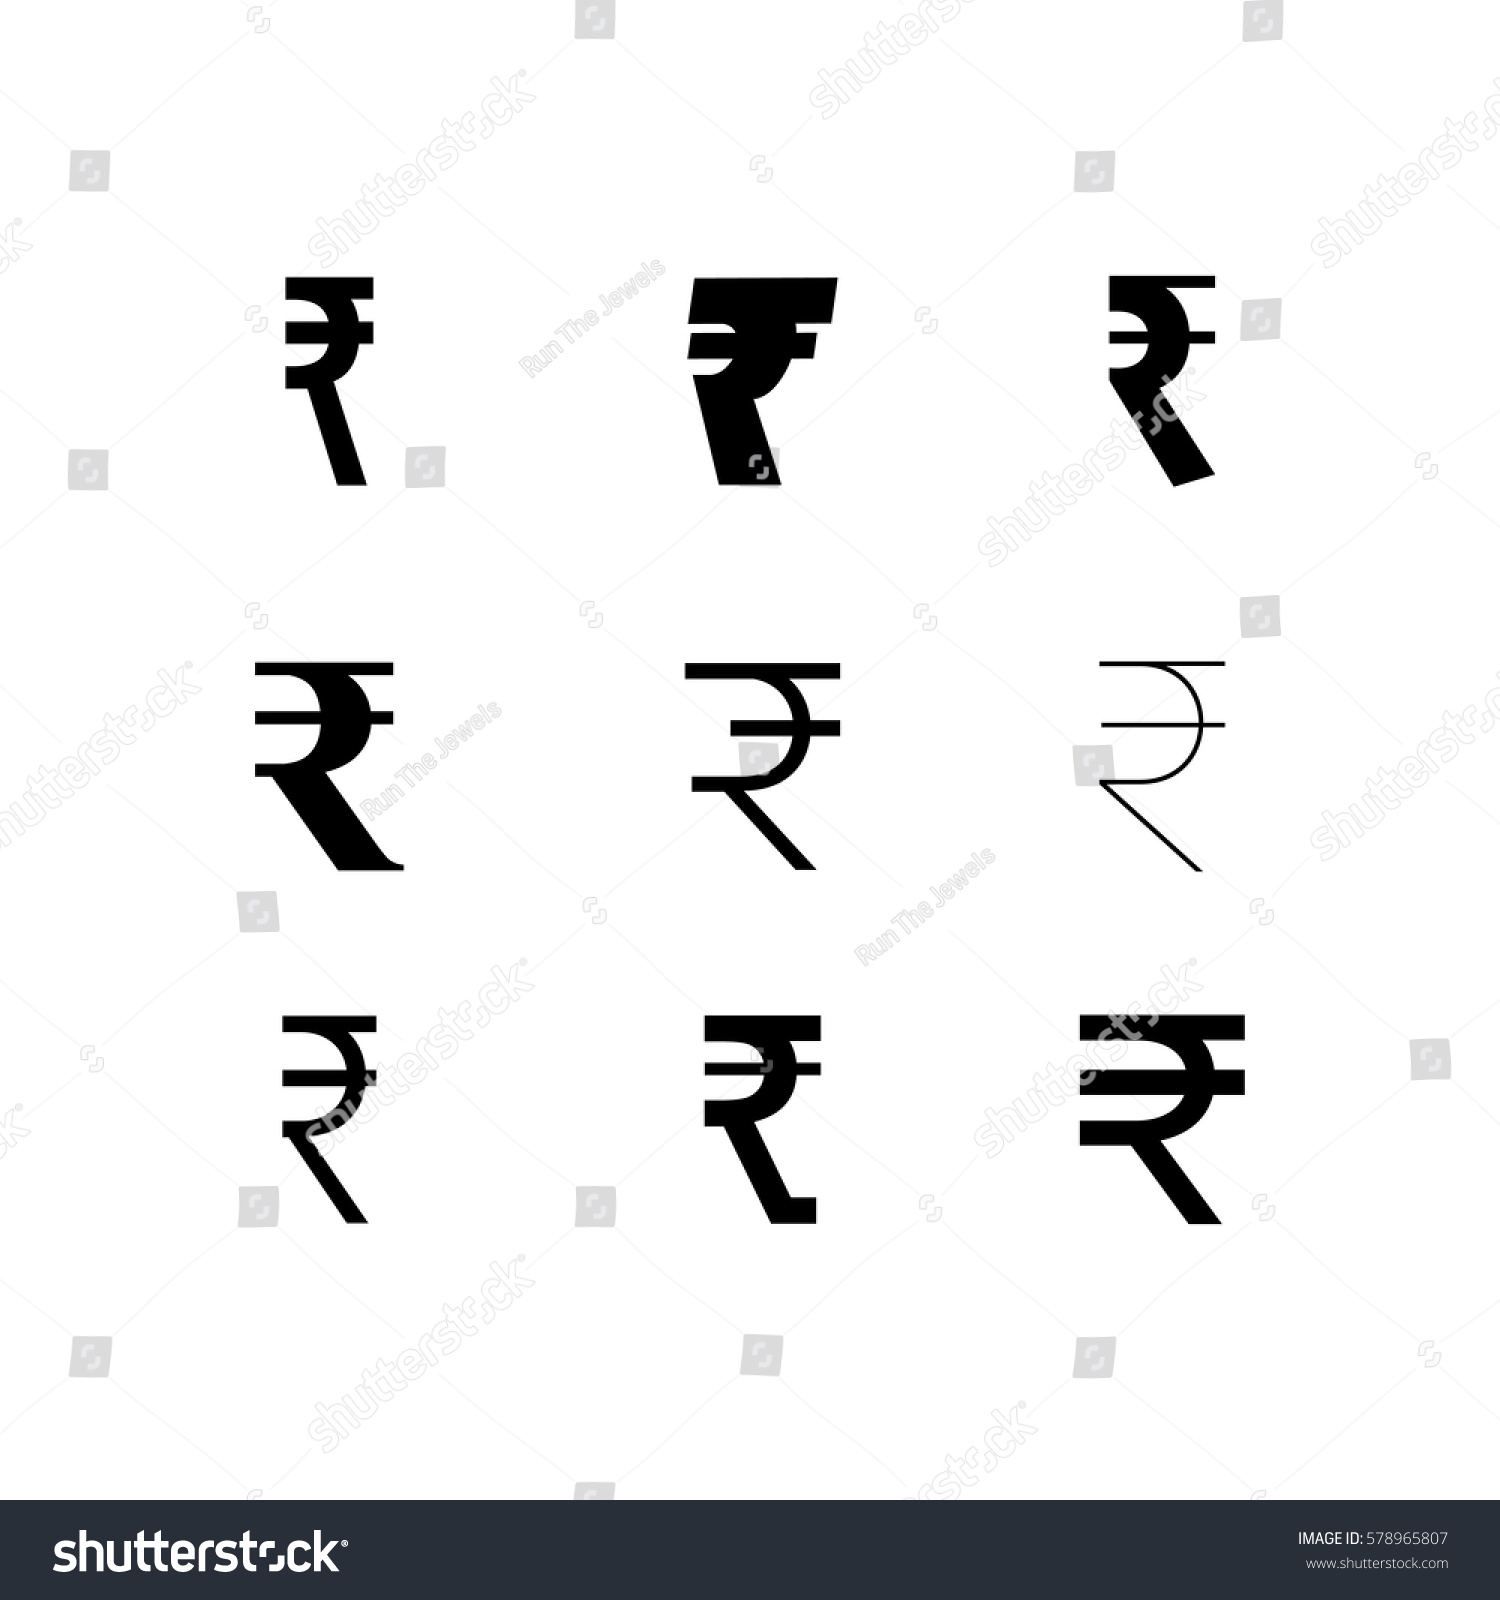 Set Rupee Symbols Different Styles Fonts Stock Vector Royalty Free